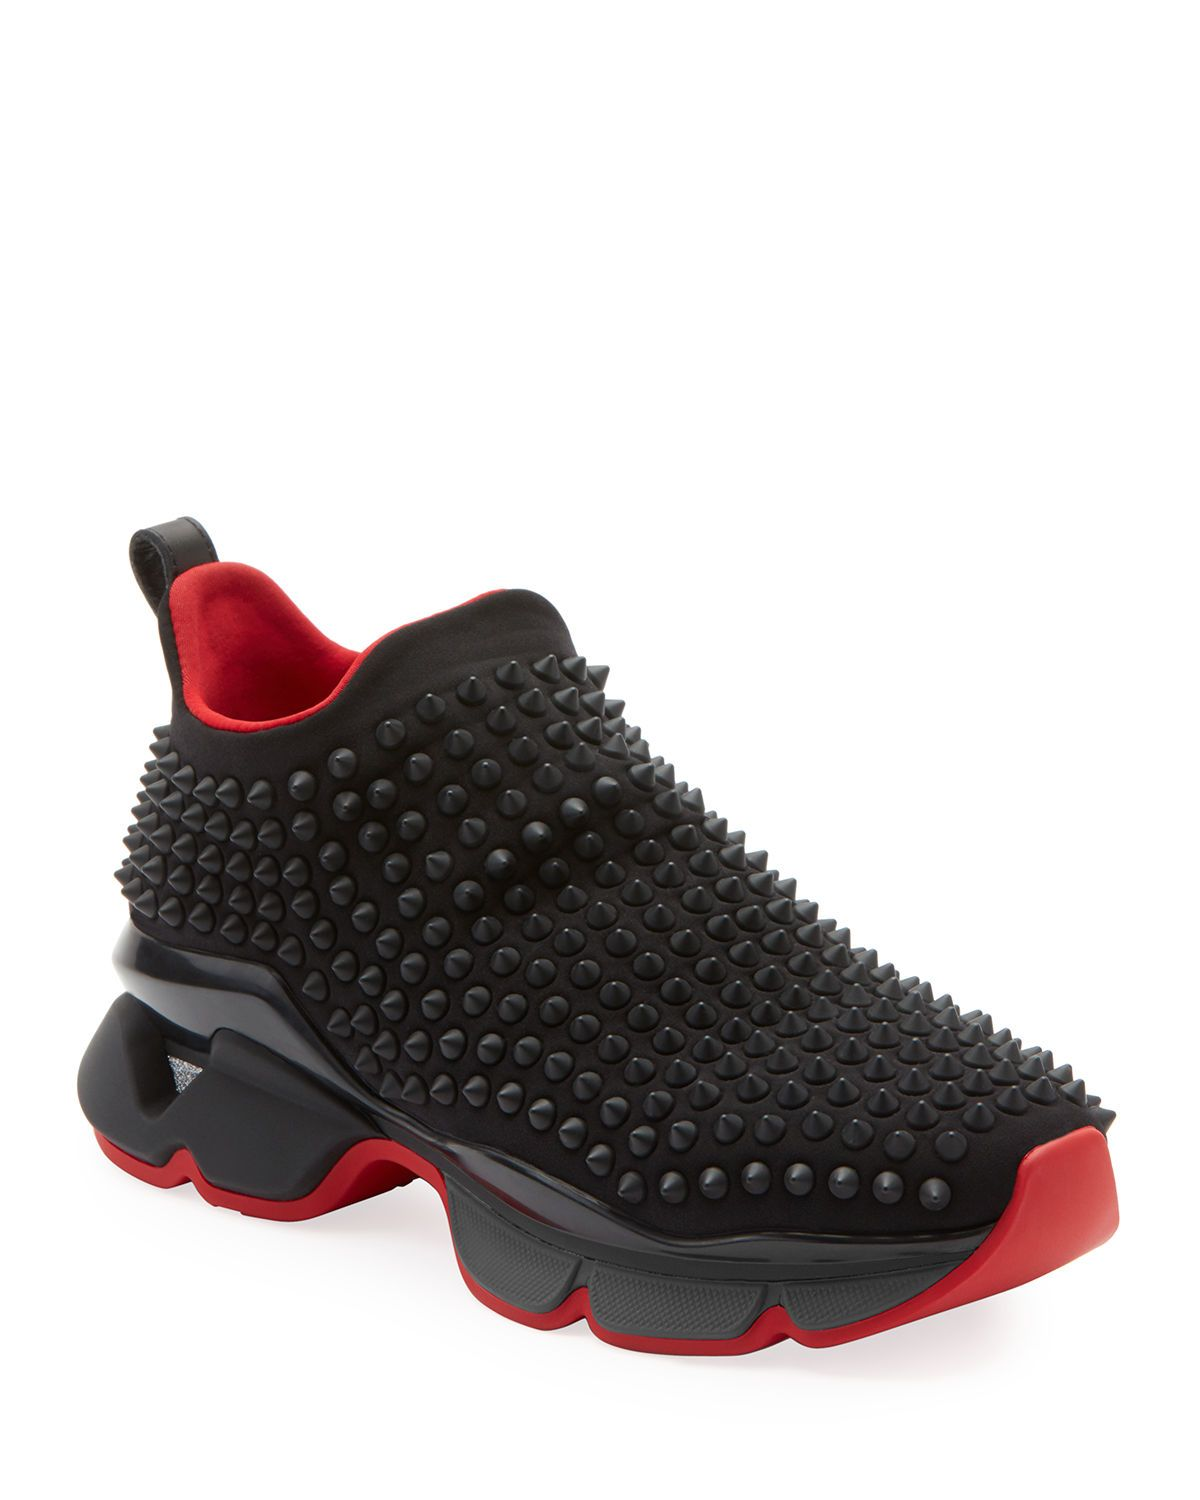 big sale 5fc61 7e47e Christian Louboutin Spike Sock Donna Red Sole Sneakers ...